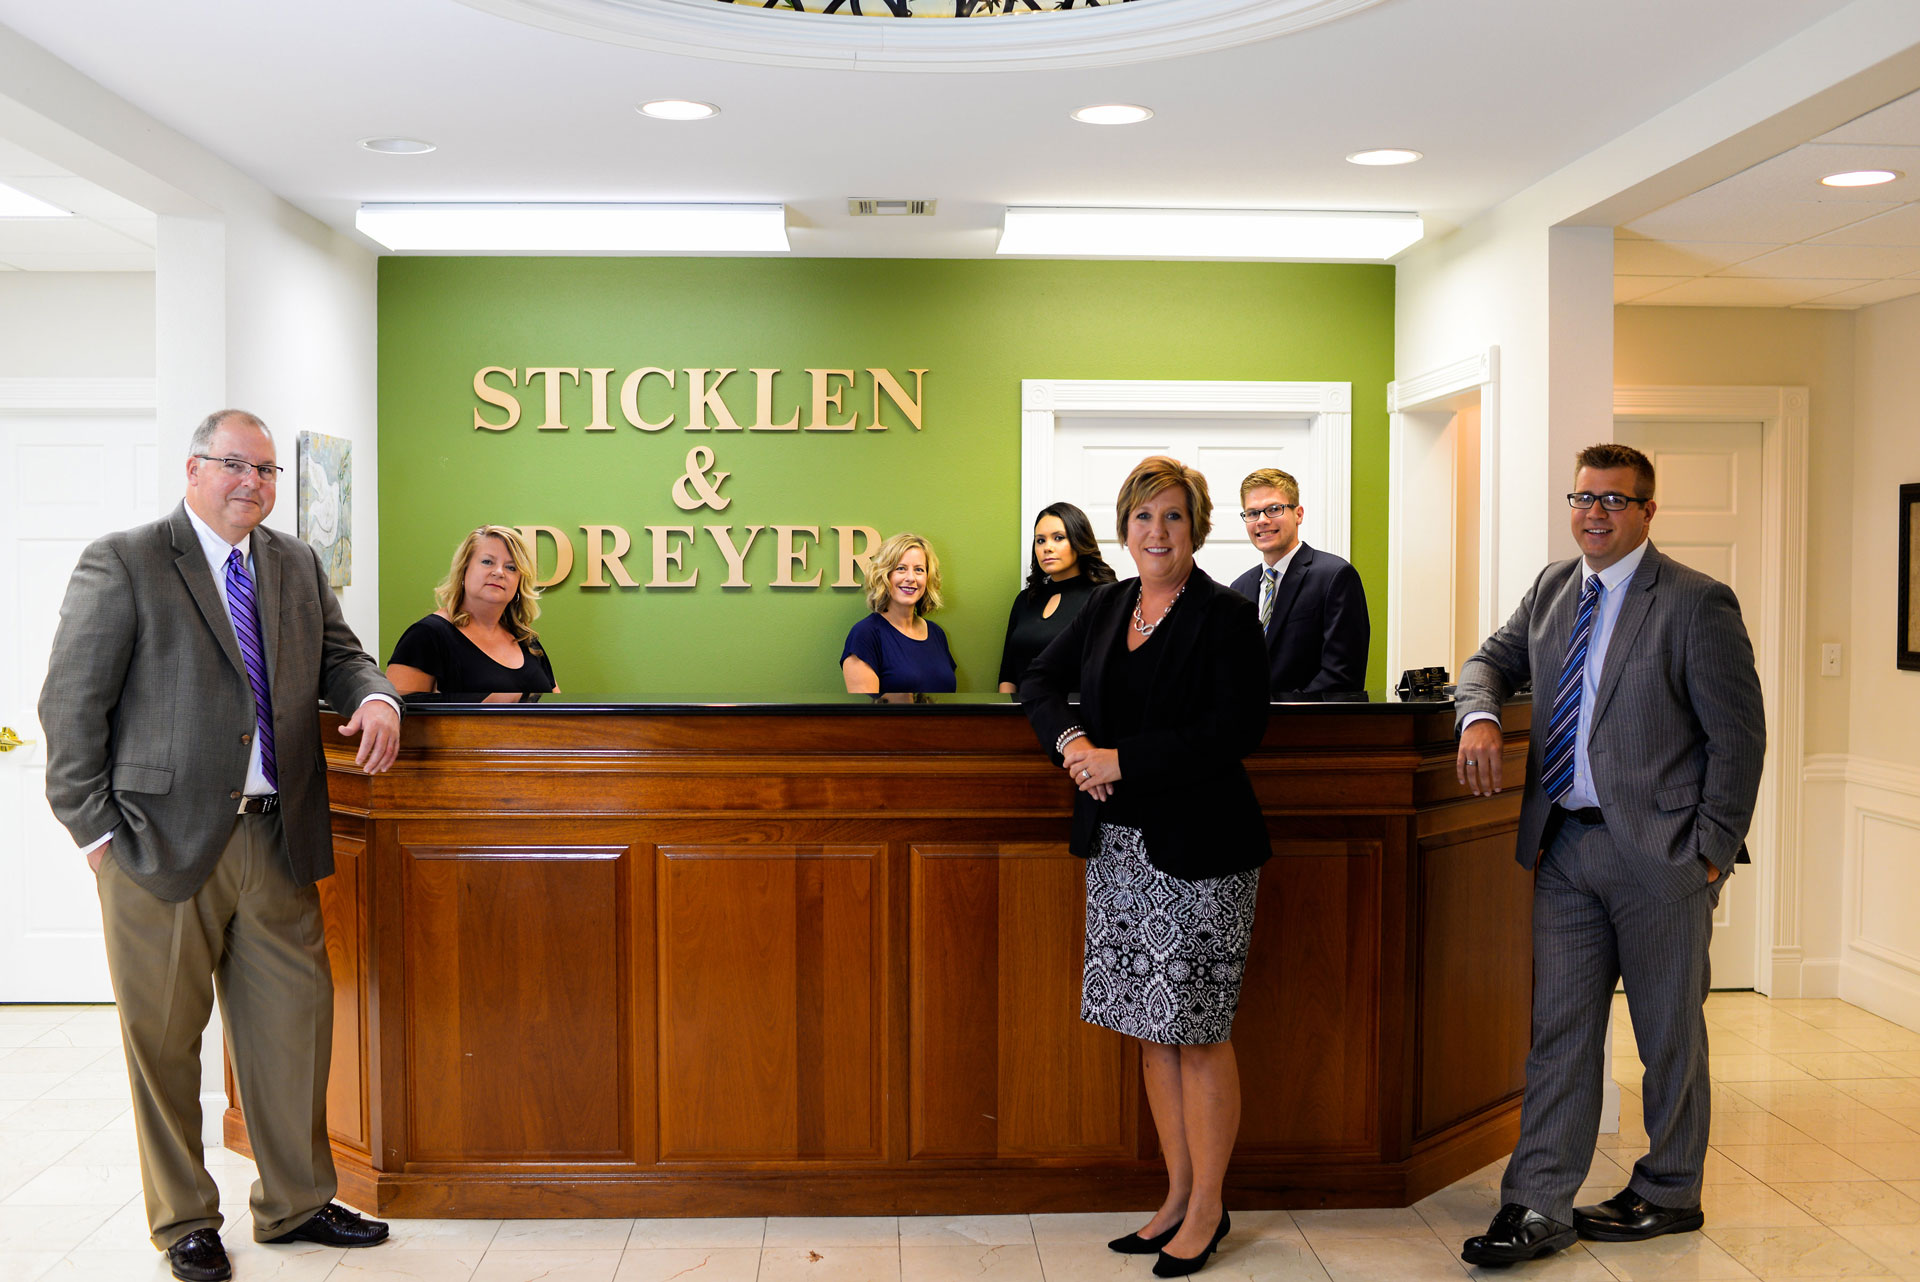 Sticklen & Dreyer | Personal Injury Attorneys Serving Joplin and Columbia, Missouri